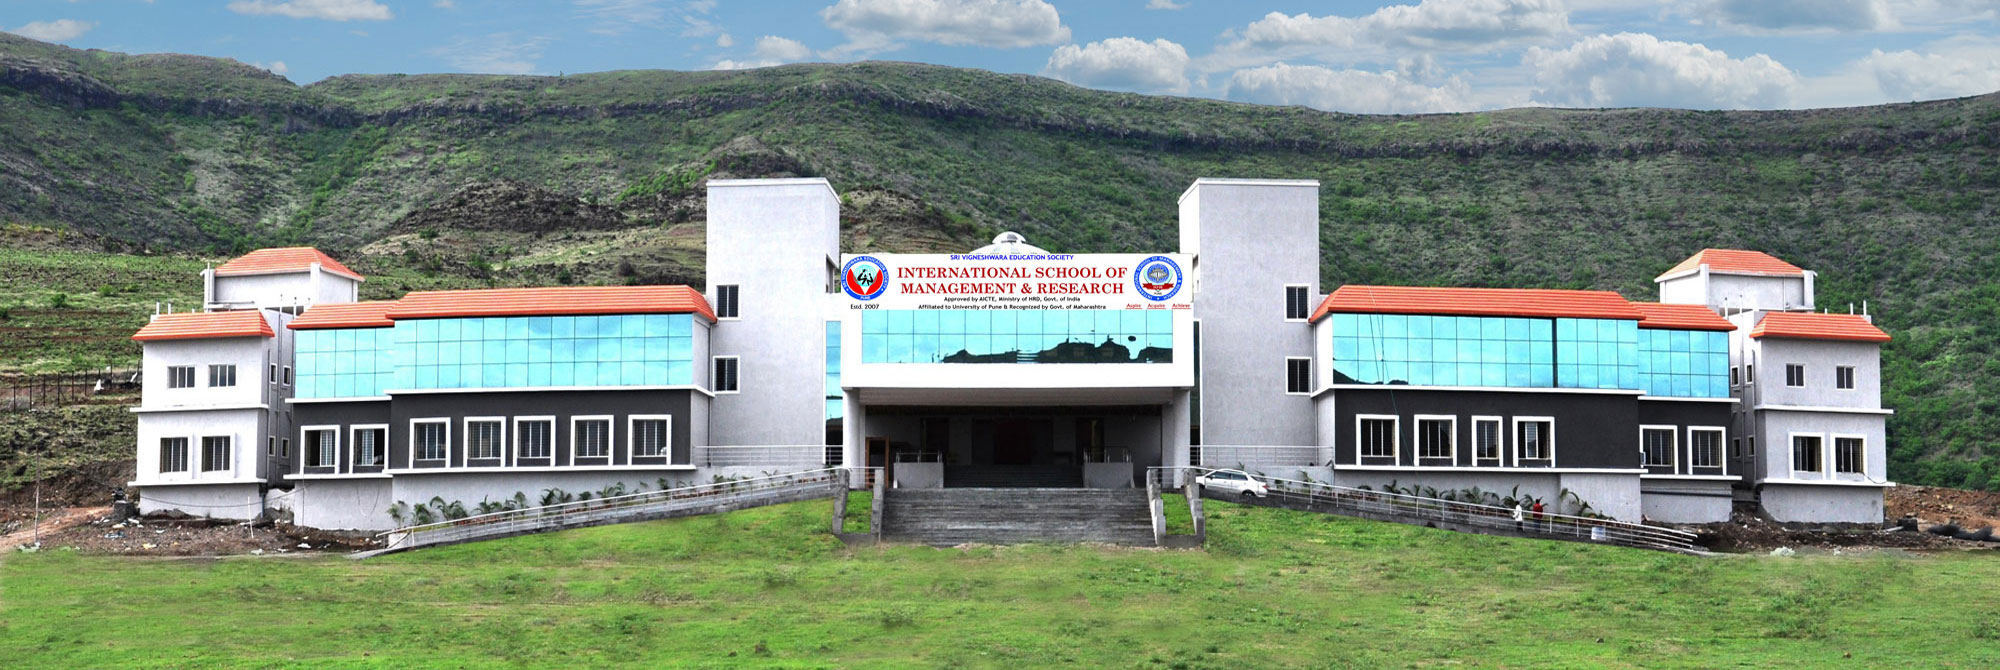 International School of Management and Research